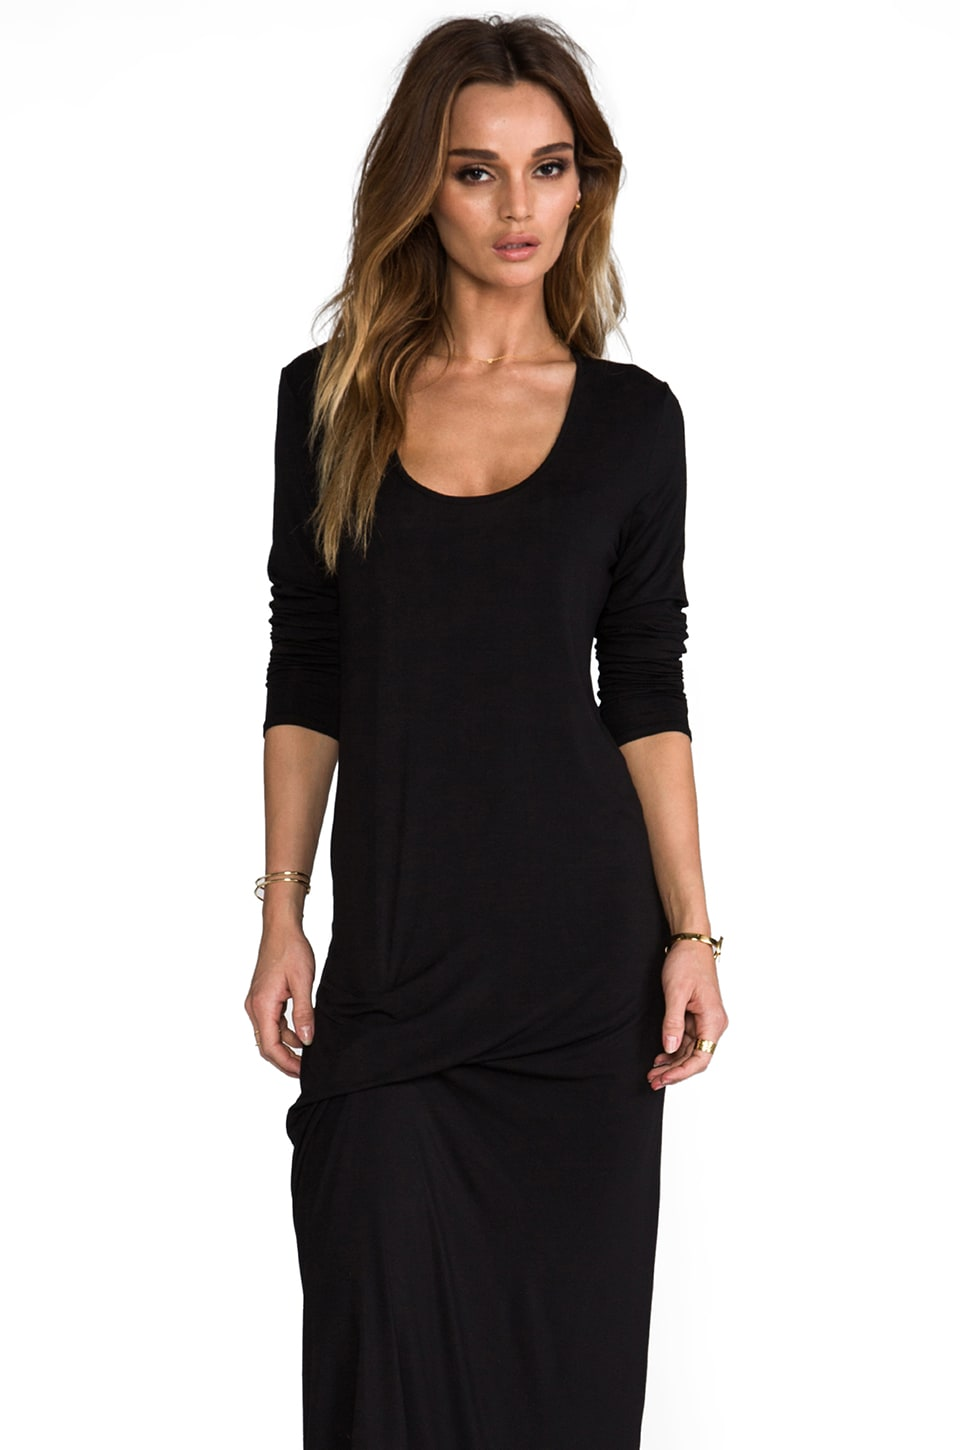 Riller & Fount Niles Pinched Front Dress in Black